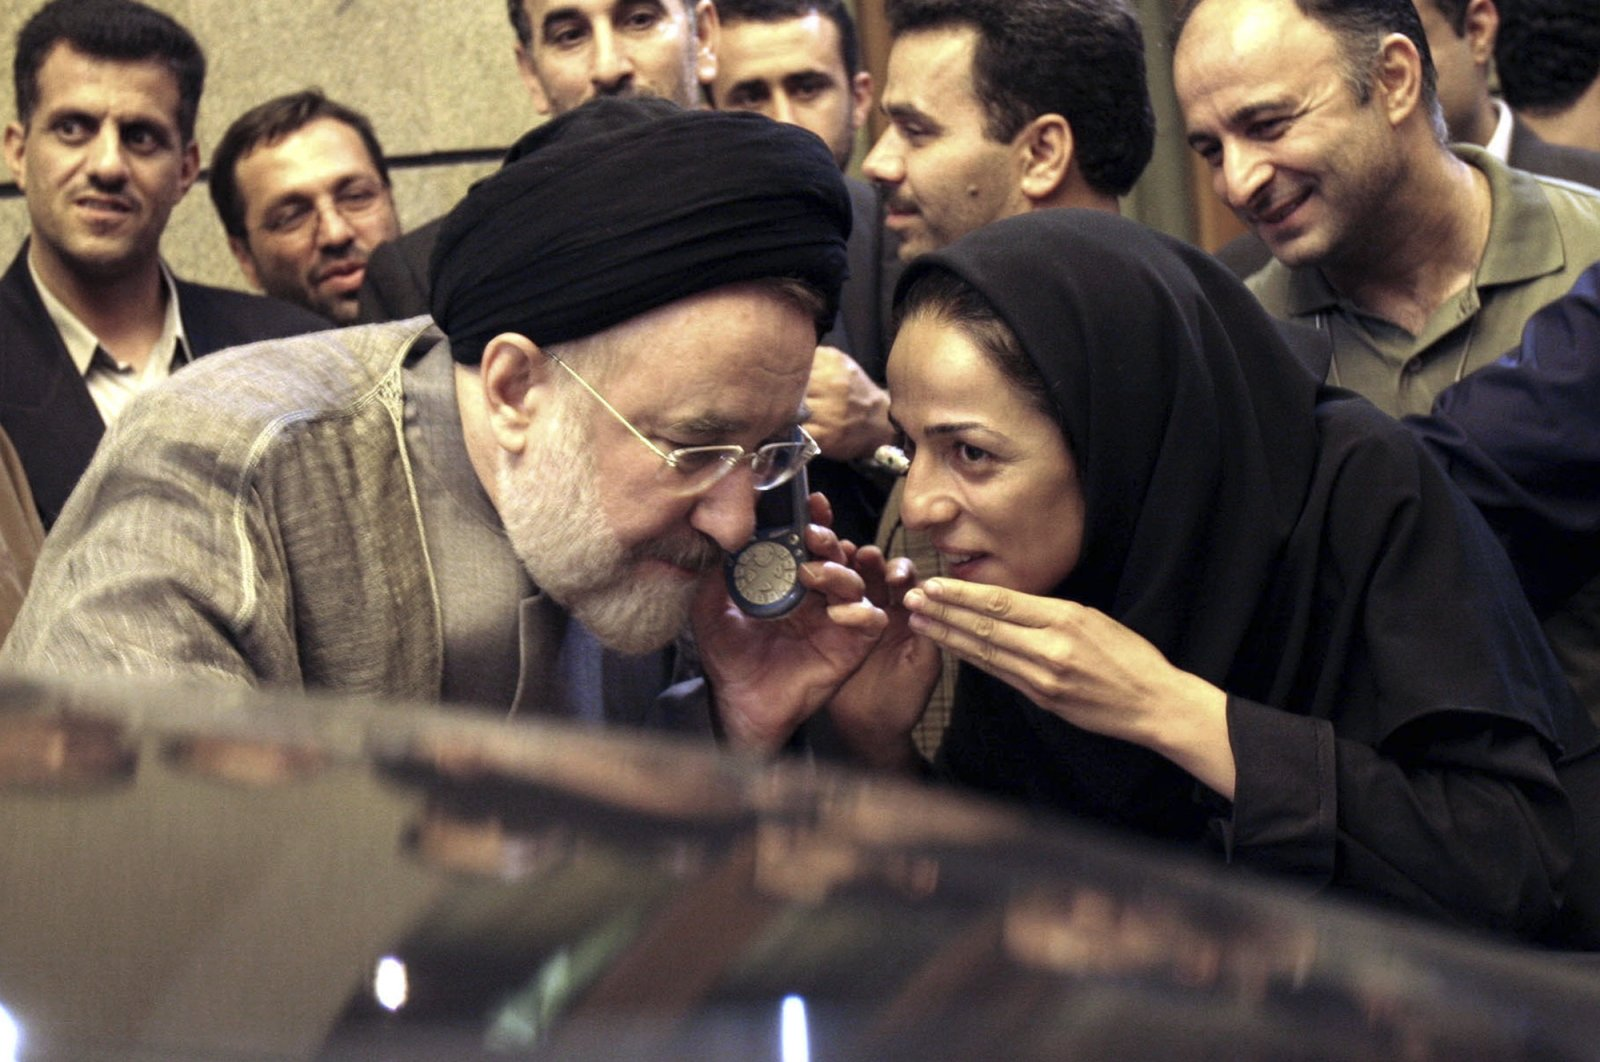 Outgoing reformist Iranian President Mohammad Khatami talks on the phone with the mother of female journalist Masih Alinejad, right, after meeting with journalists in Tehran, Iran, July 13, 2005. (AP Photo)